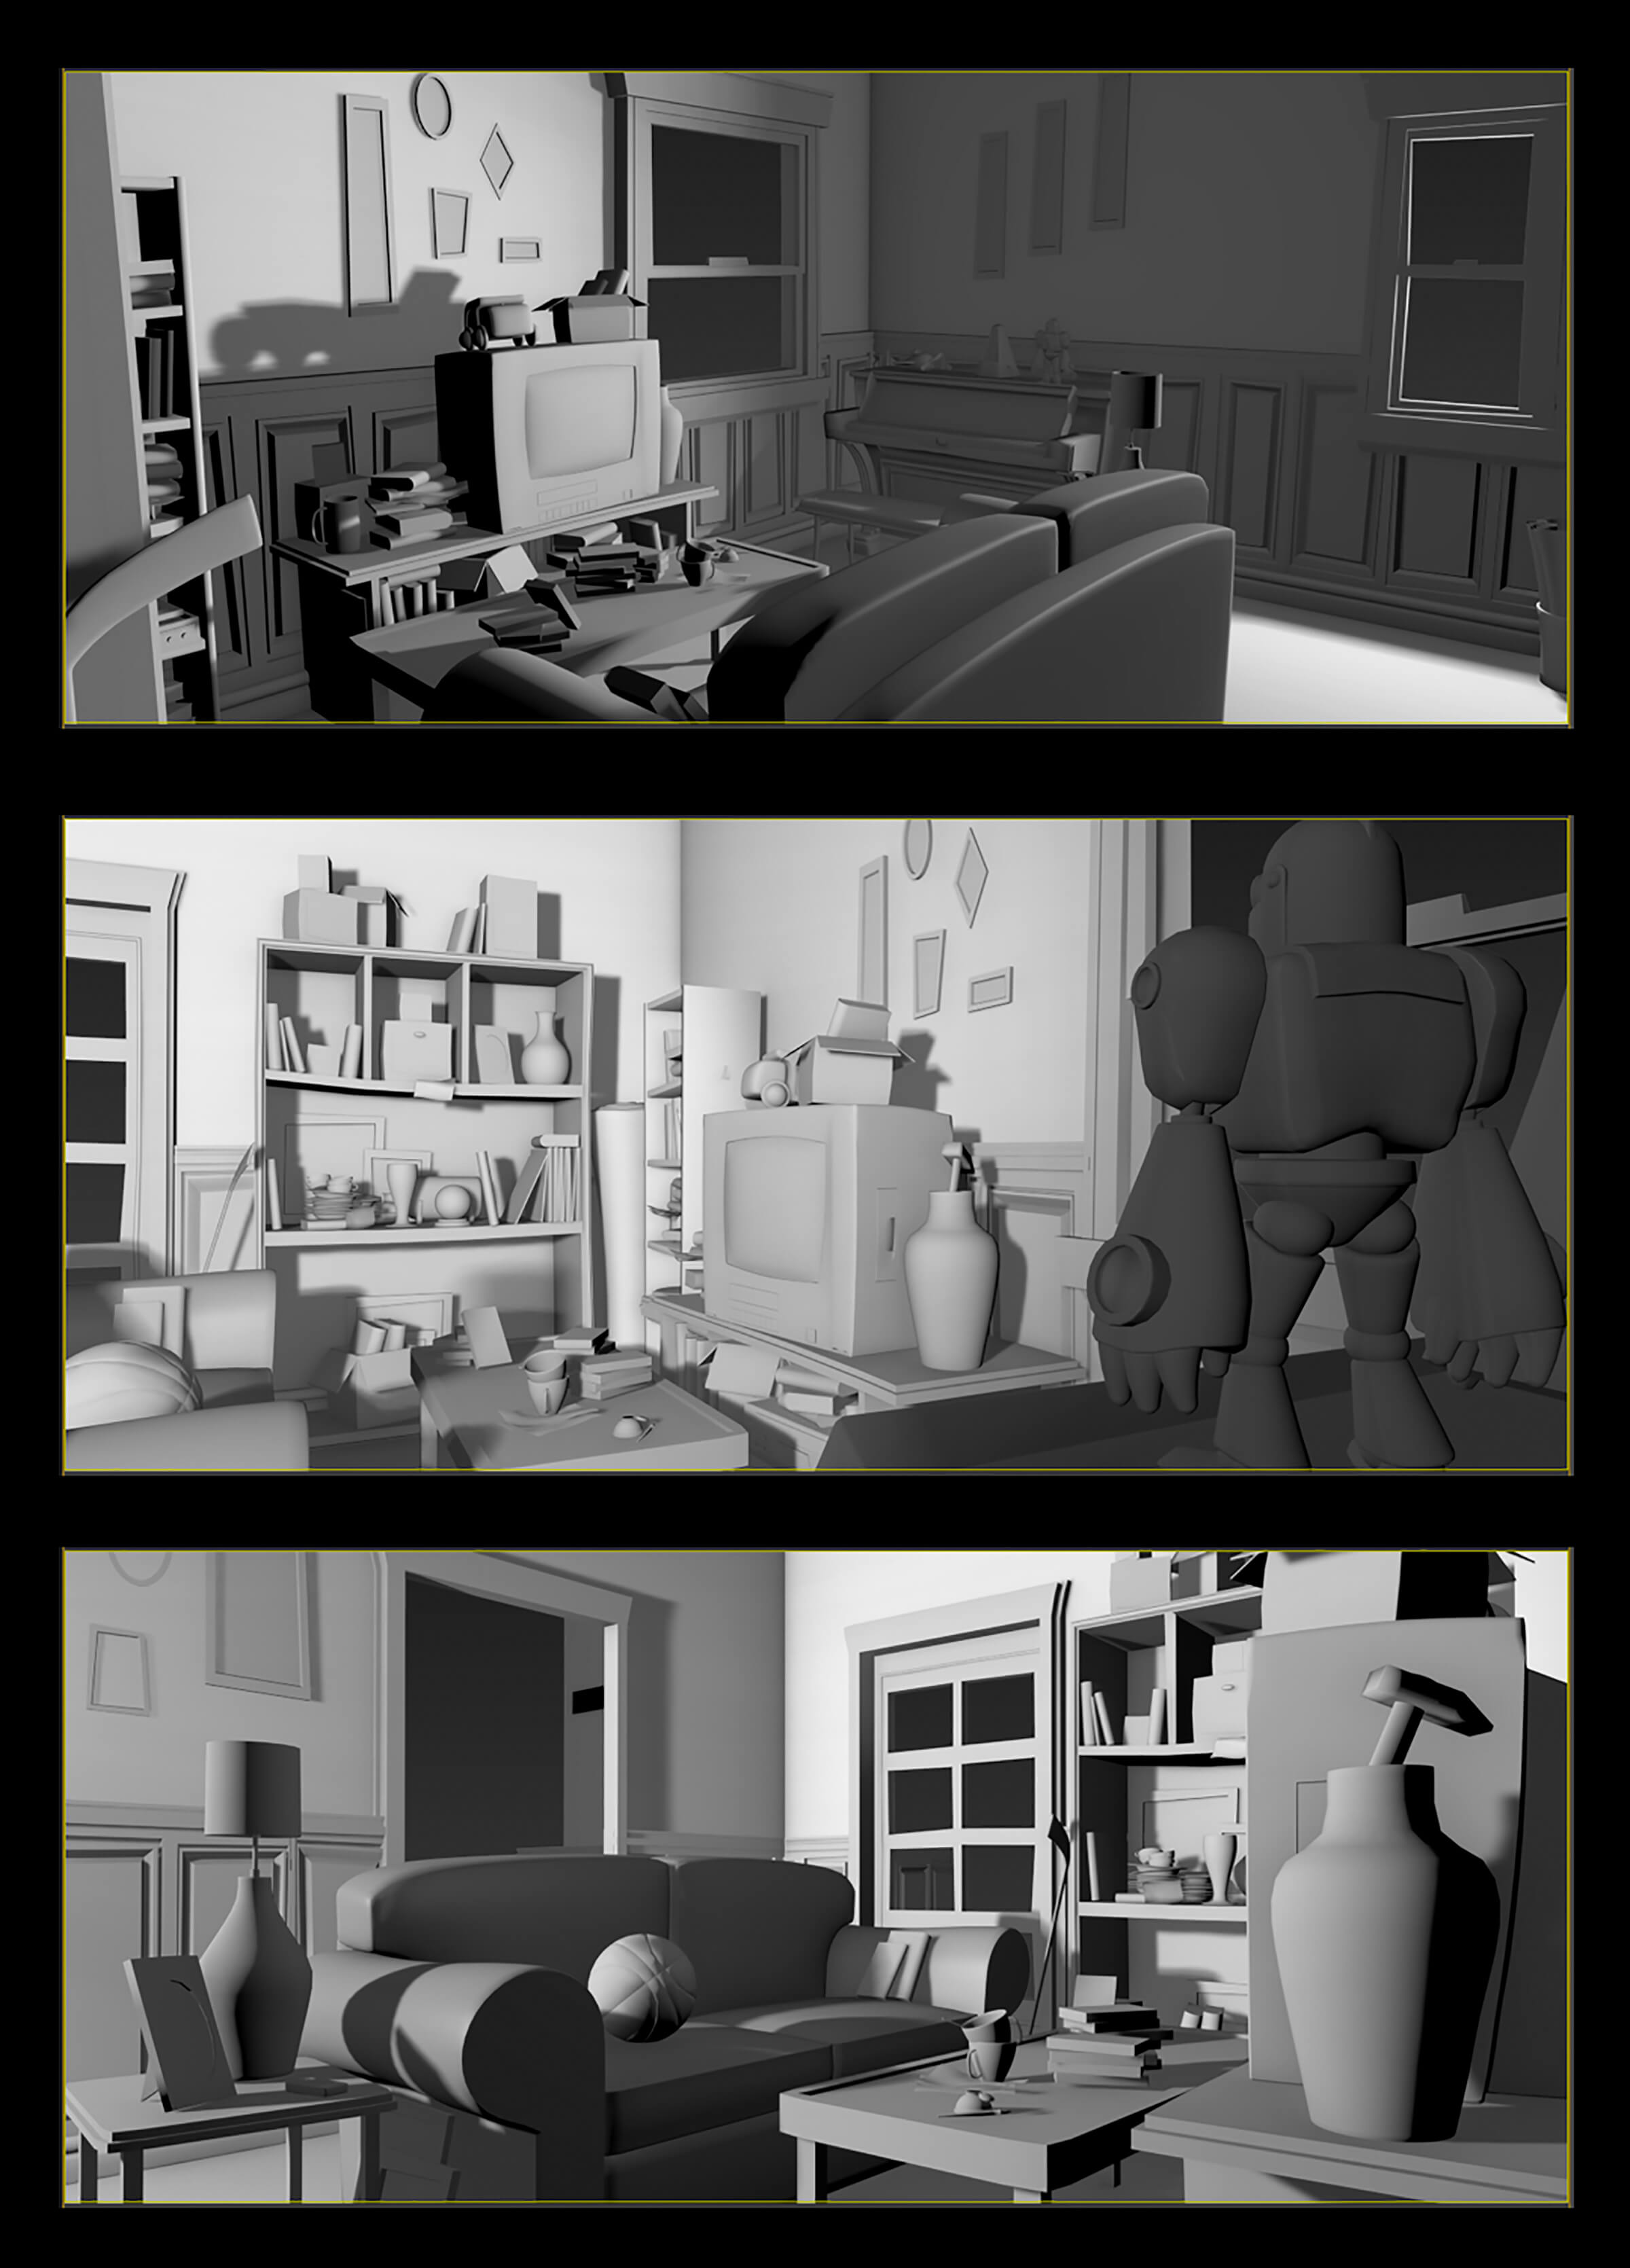 A messy, colorless 3D-modeled living room with a sagging shelves full of junk, a coffee table, and a small television set.